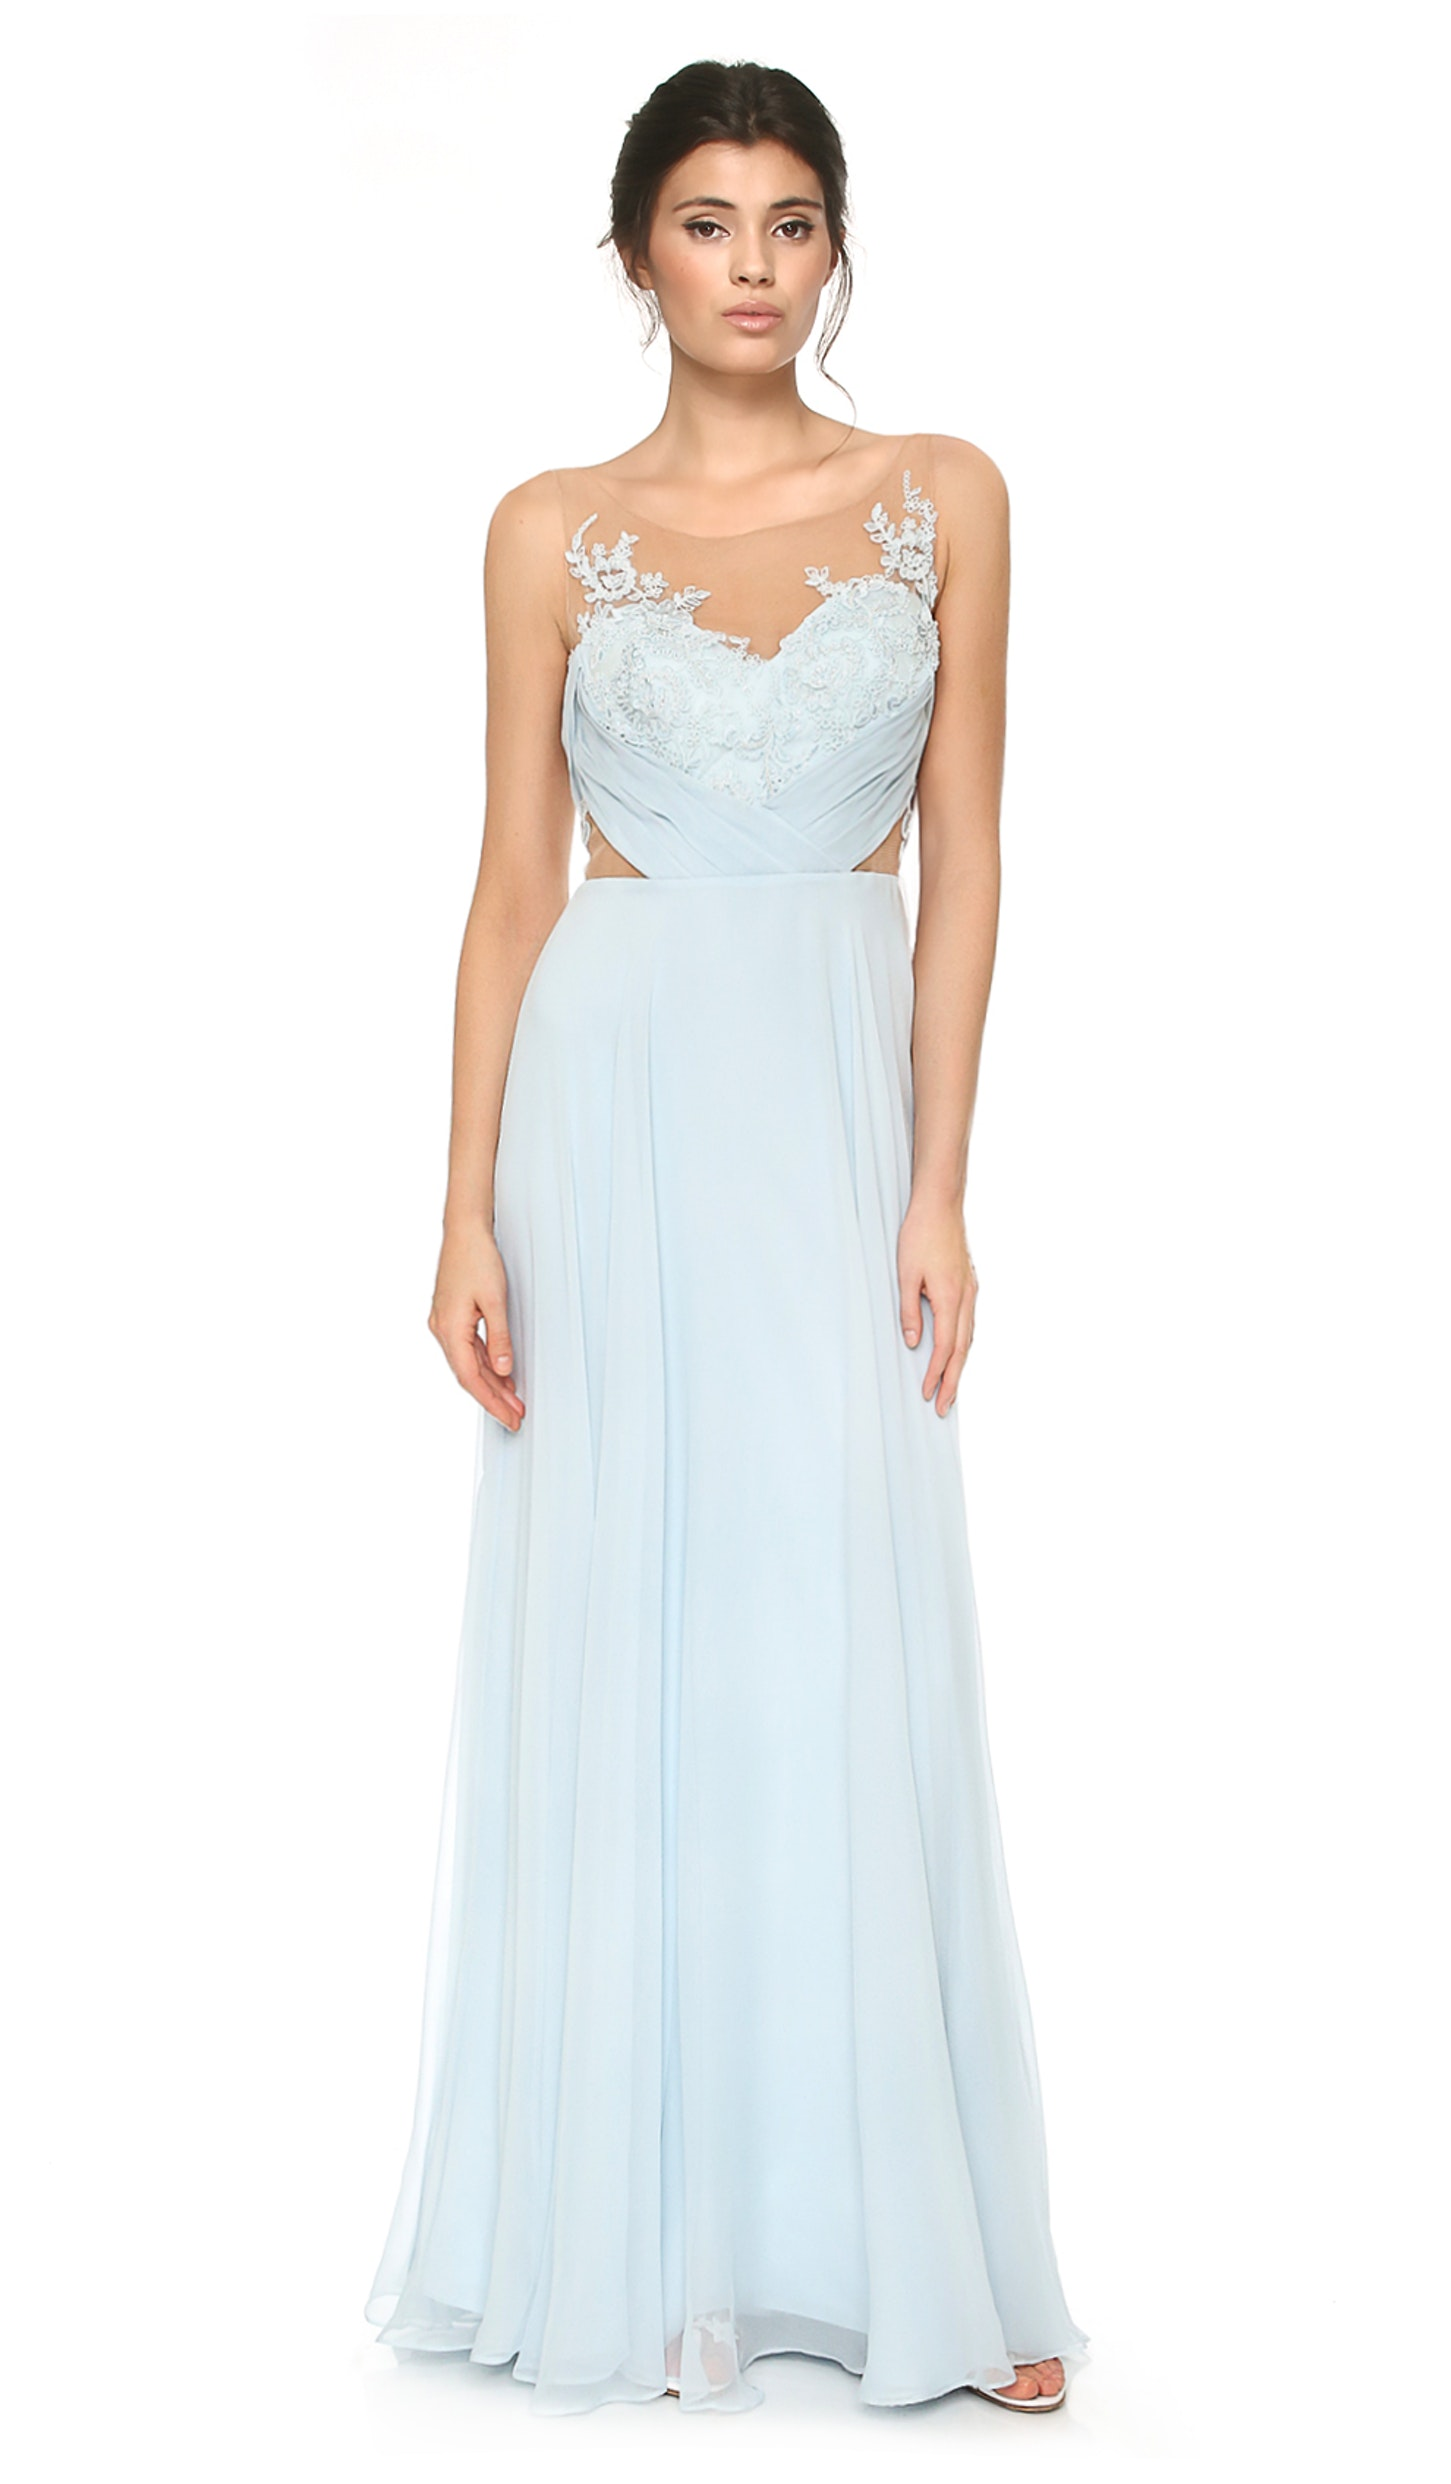 Blue Chiffon Gown - MARCHESA NOTTE — Chic by Choice Sale